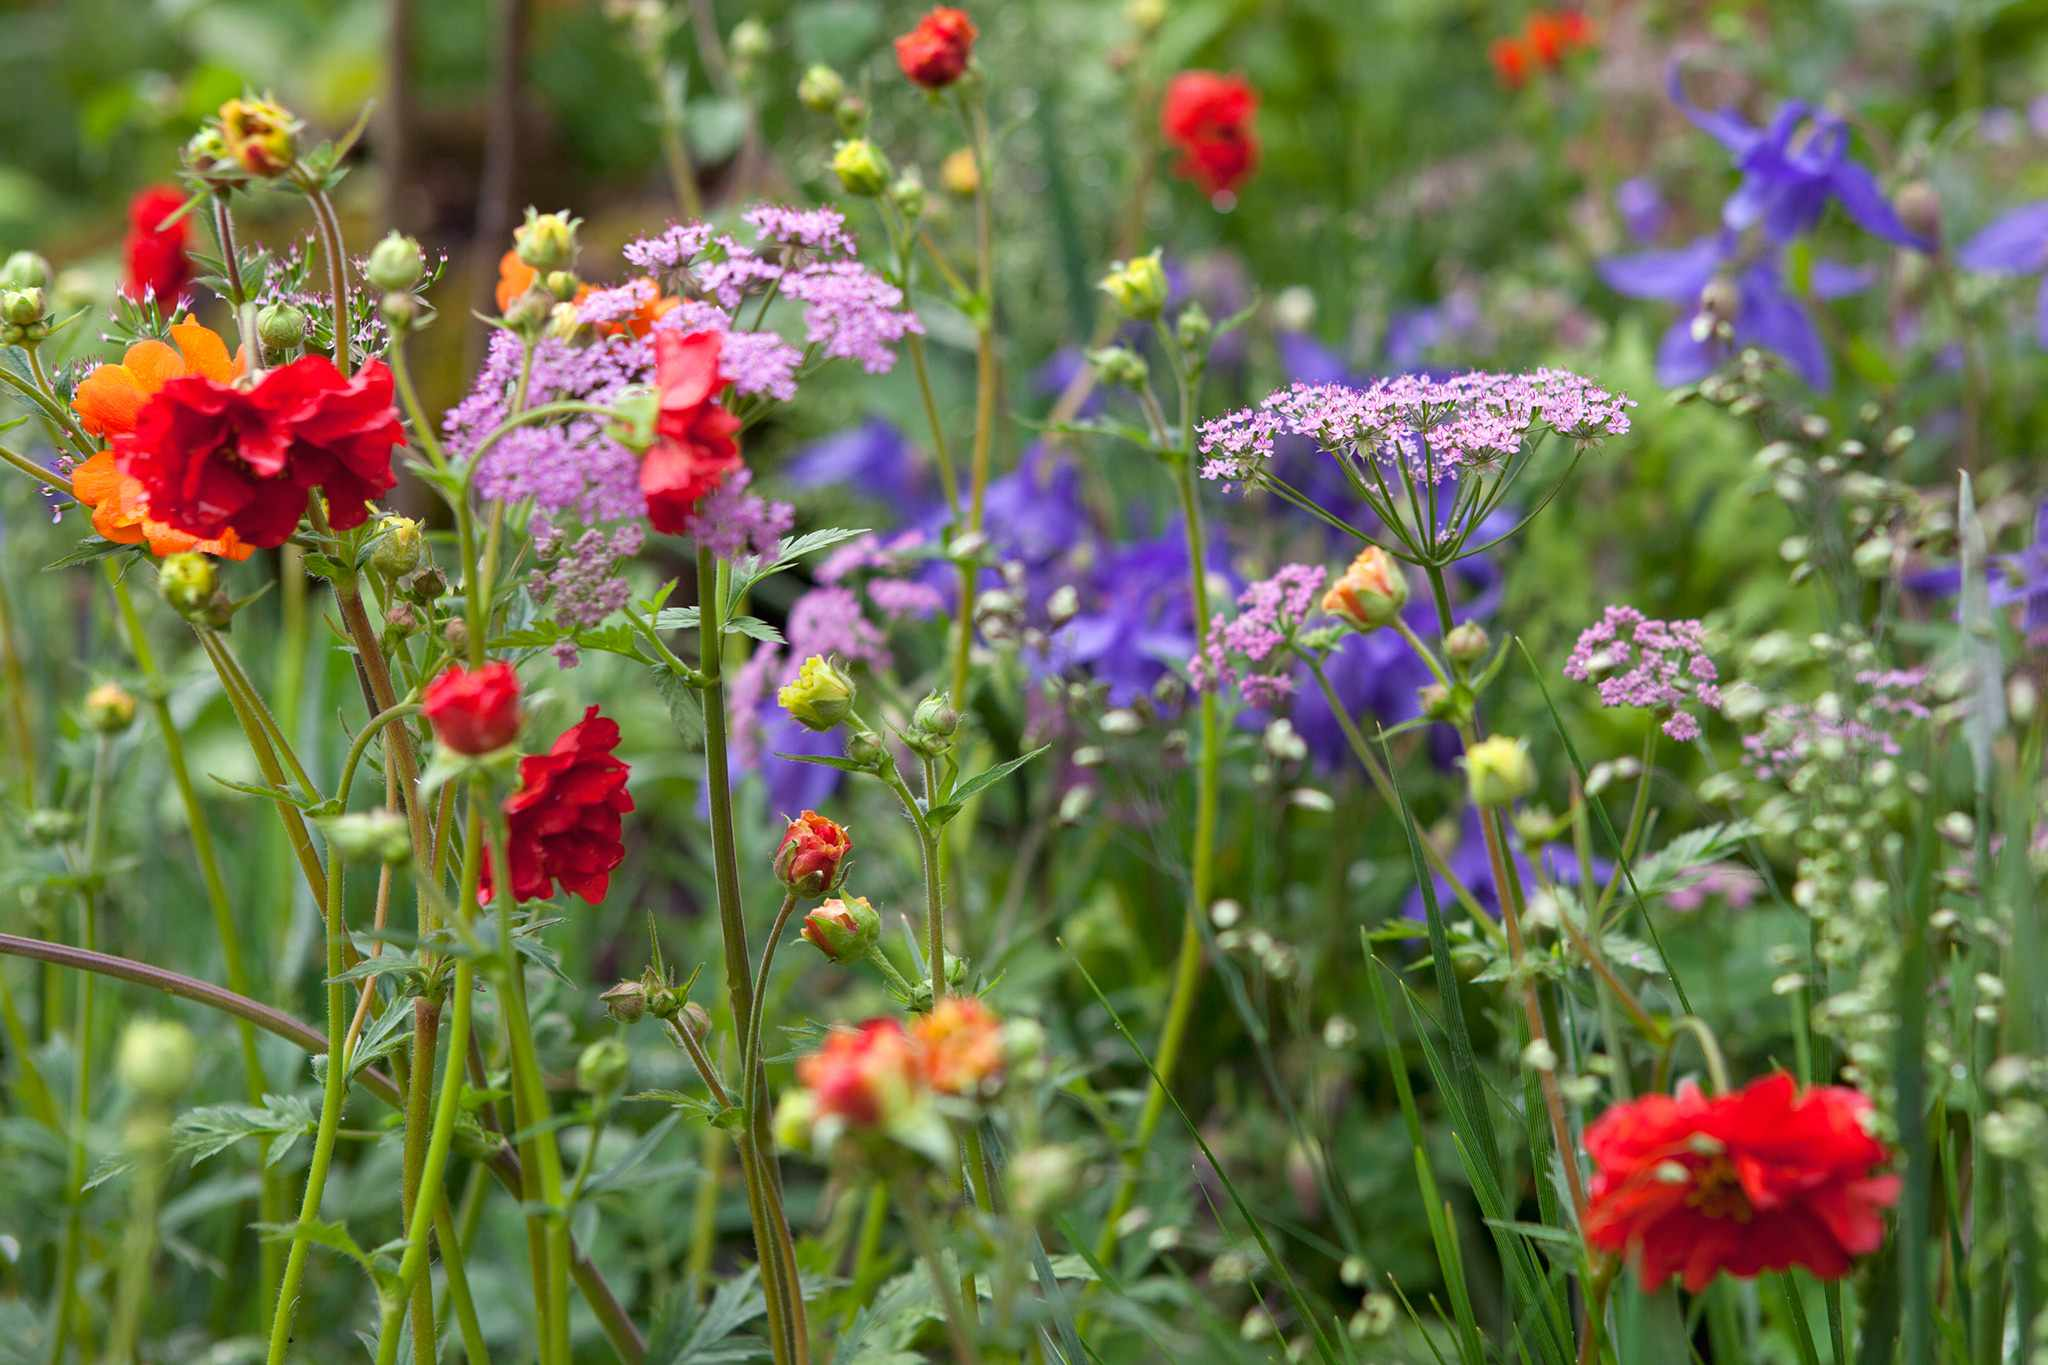 Geums and umbellifers in a border